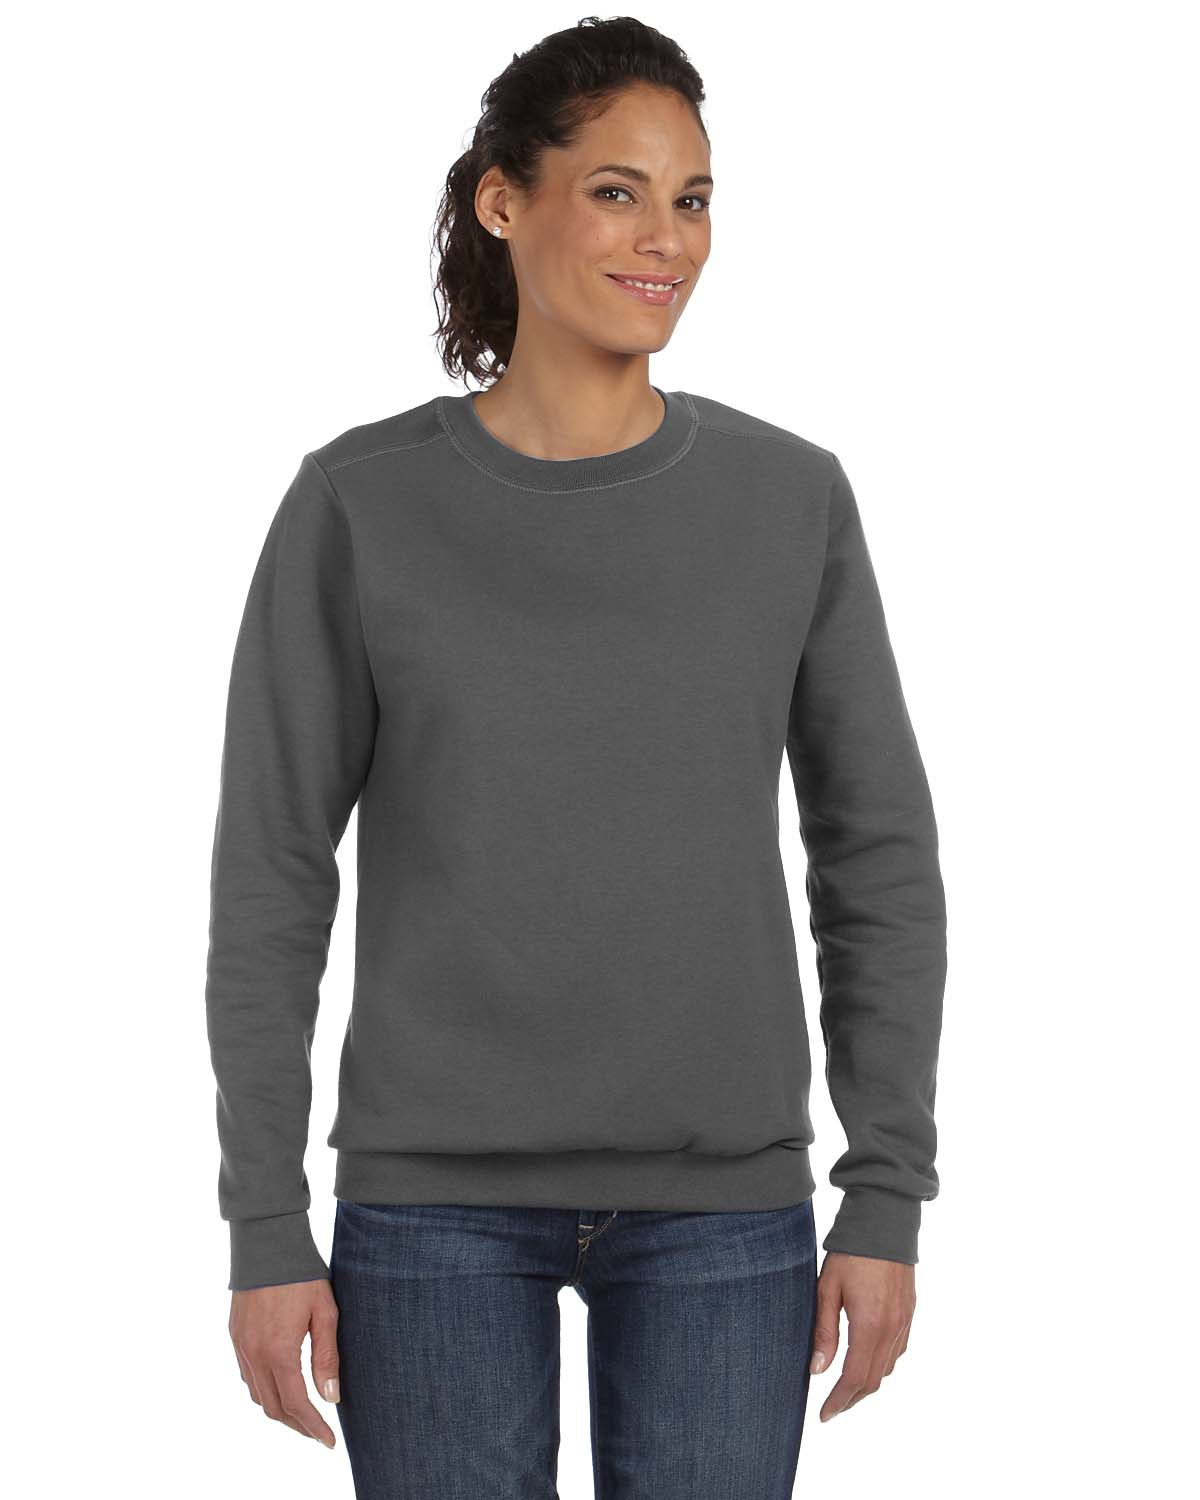 fb63ecd07be33 Anvil 71000L - Ladies  Crewneck Fleece  10.76 - Women s Fleece